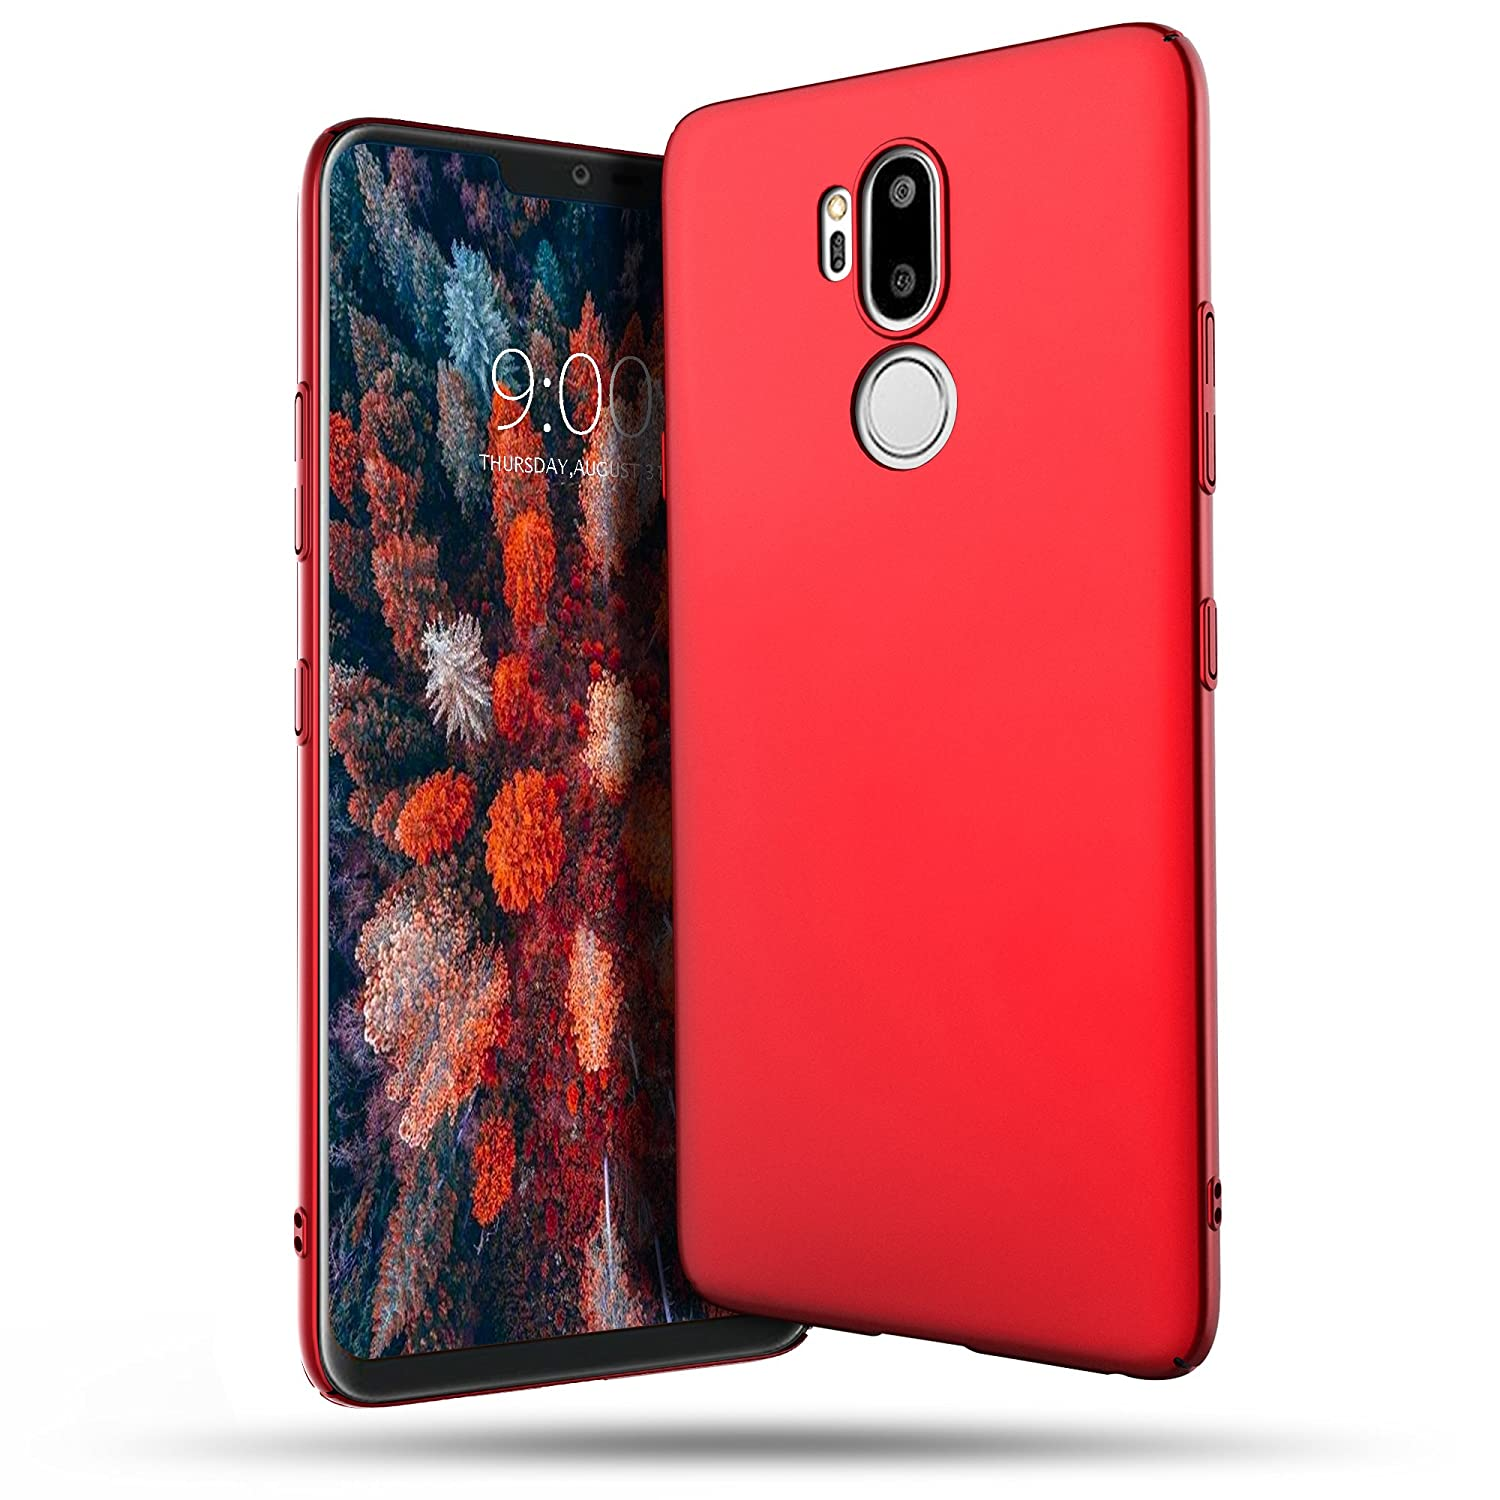 LG G7 ThinQ Case, Belk Ultra Slim Thin Snug-Fit Scratch Resistant Premium PC Hard Protective Cover with Matte Finish Coating for LG G7 ThinQ, Black tzy-g7pc-bk